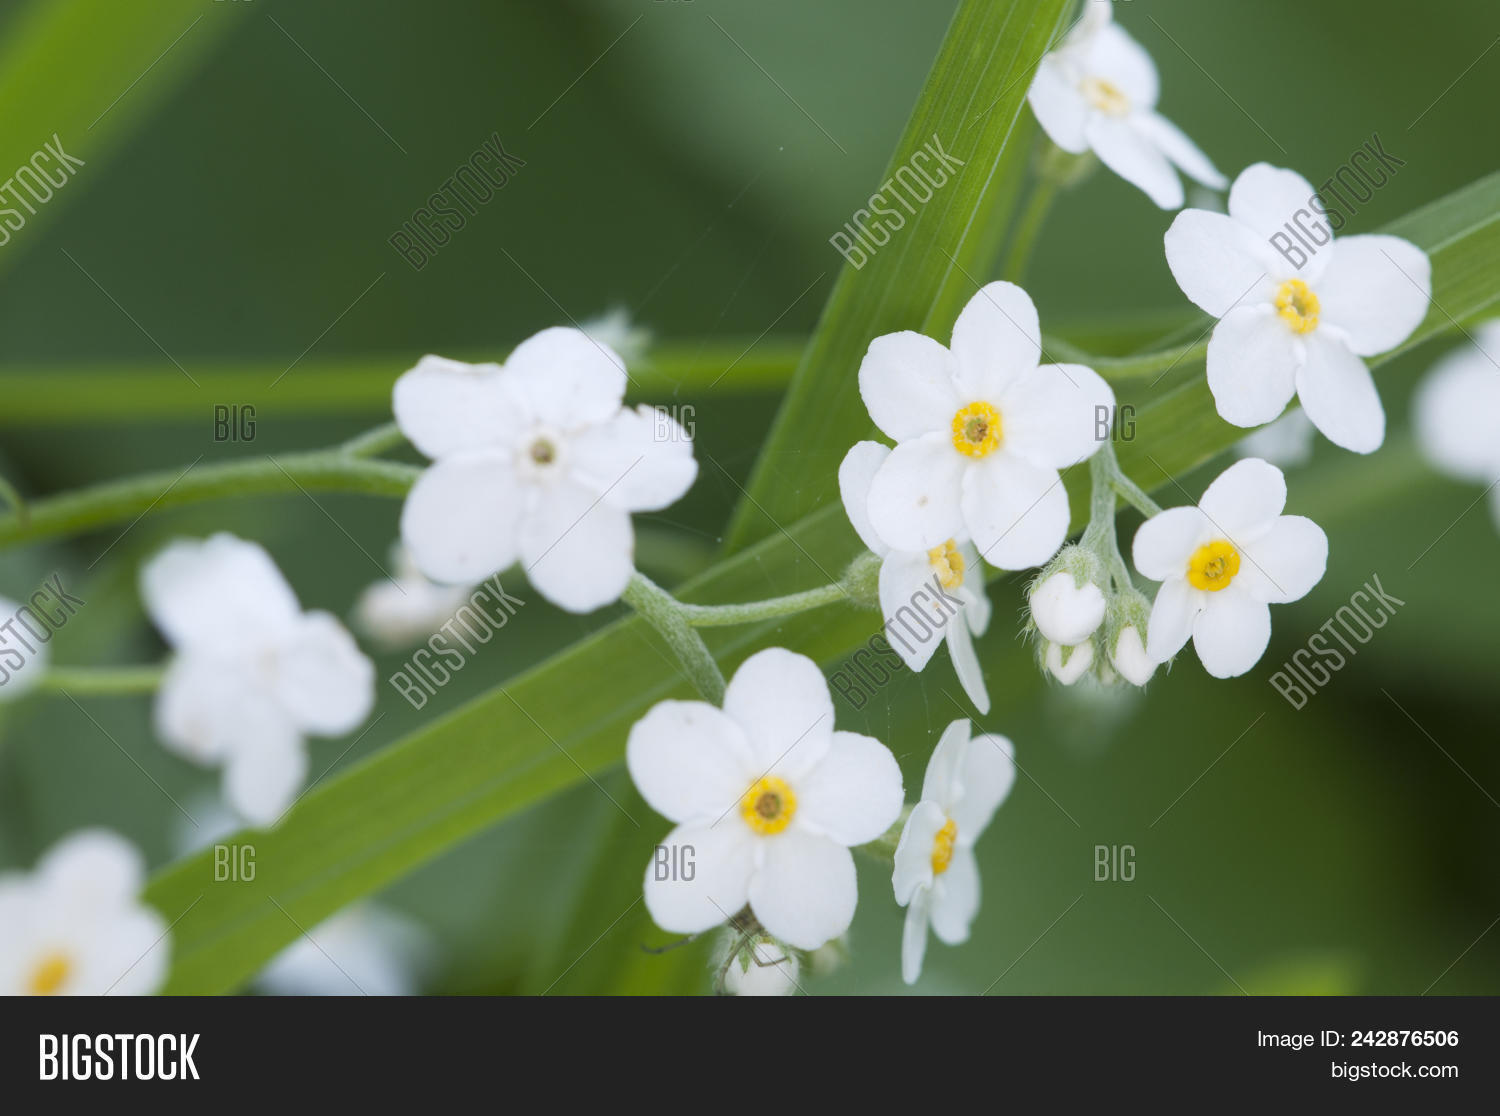 Forget Me Not White Image Photo Free Trial Bigstock